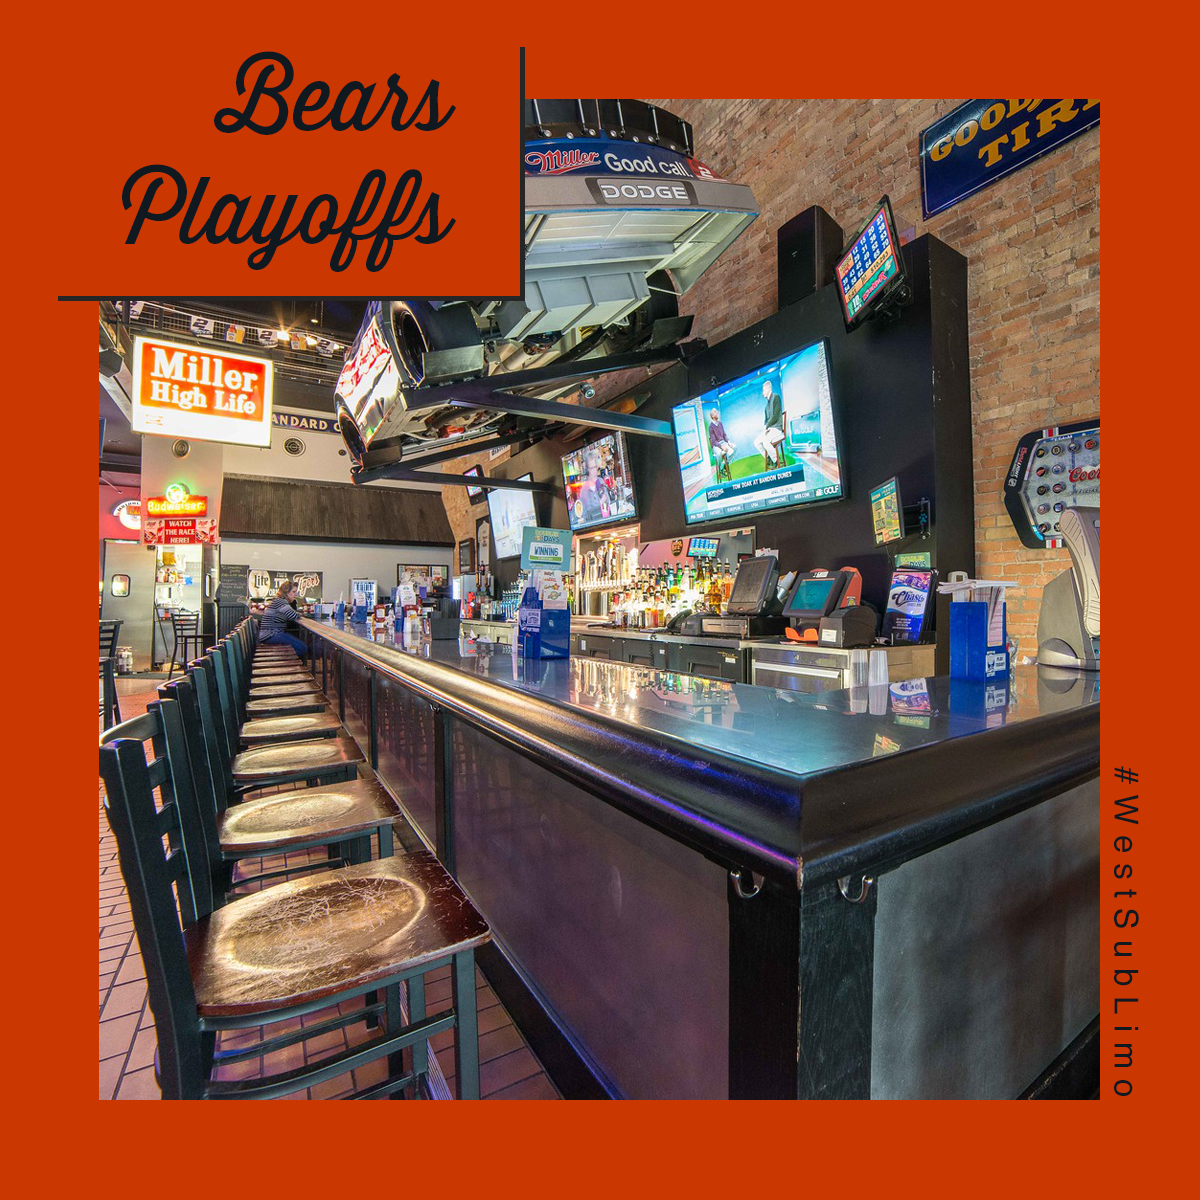 Chicago Suburbs Limo Service for Bears Playoff Season